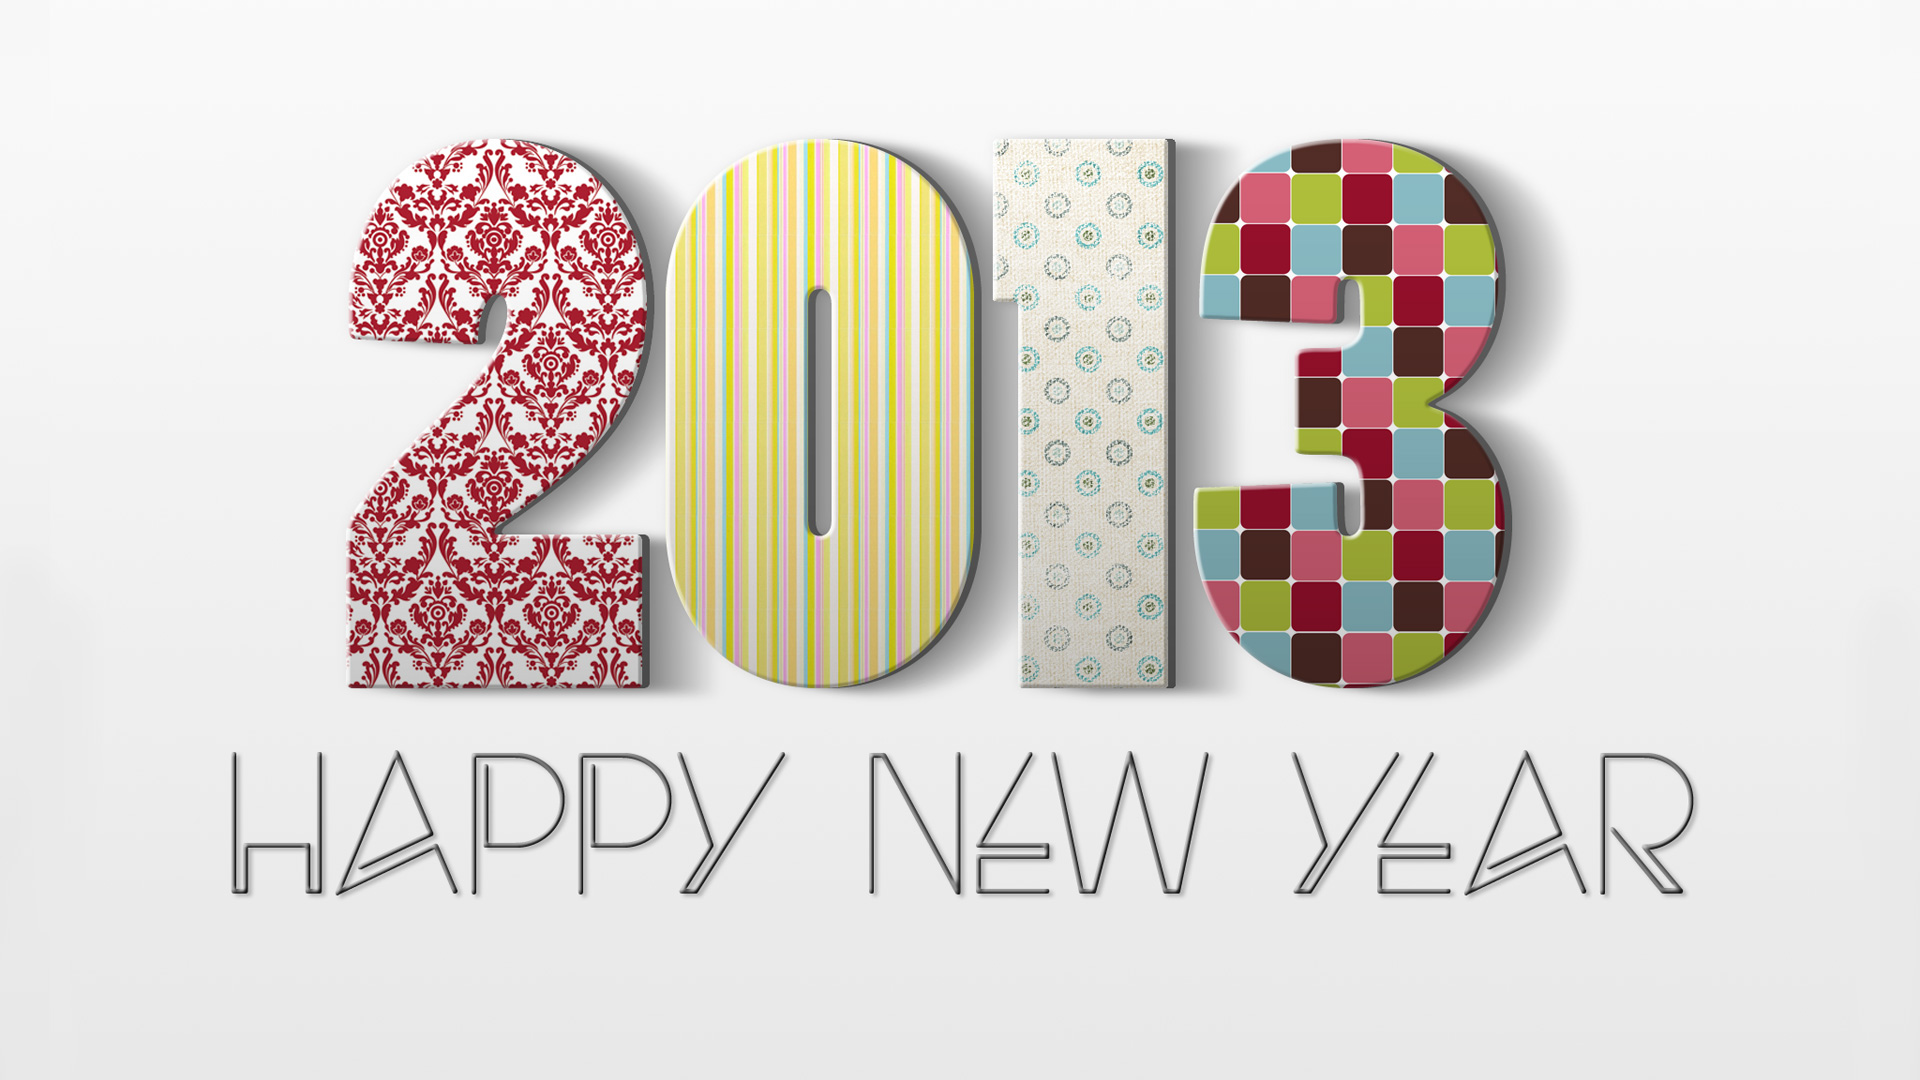 Abstract New Year Wallpaper 2013 Hd Wallpaper